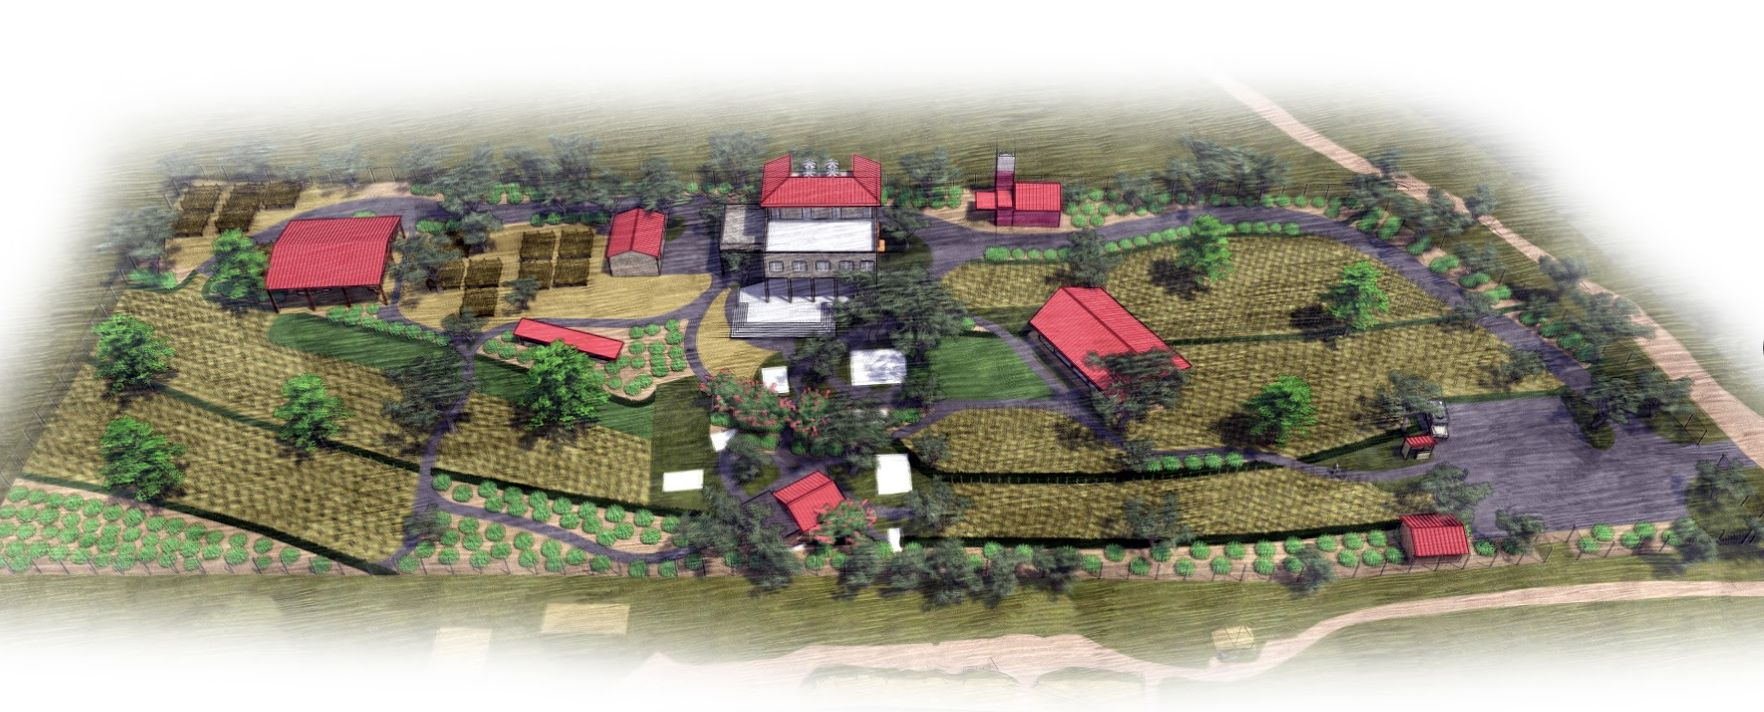 Farm rendering View 1 4.2019